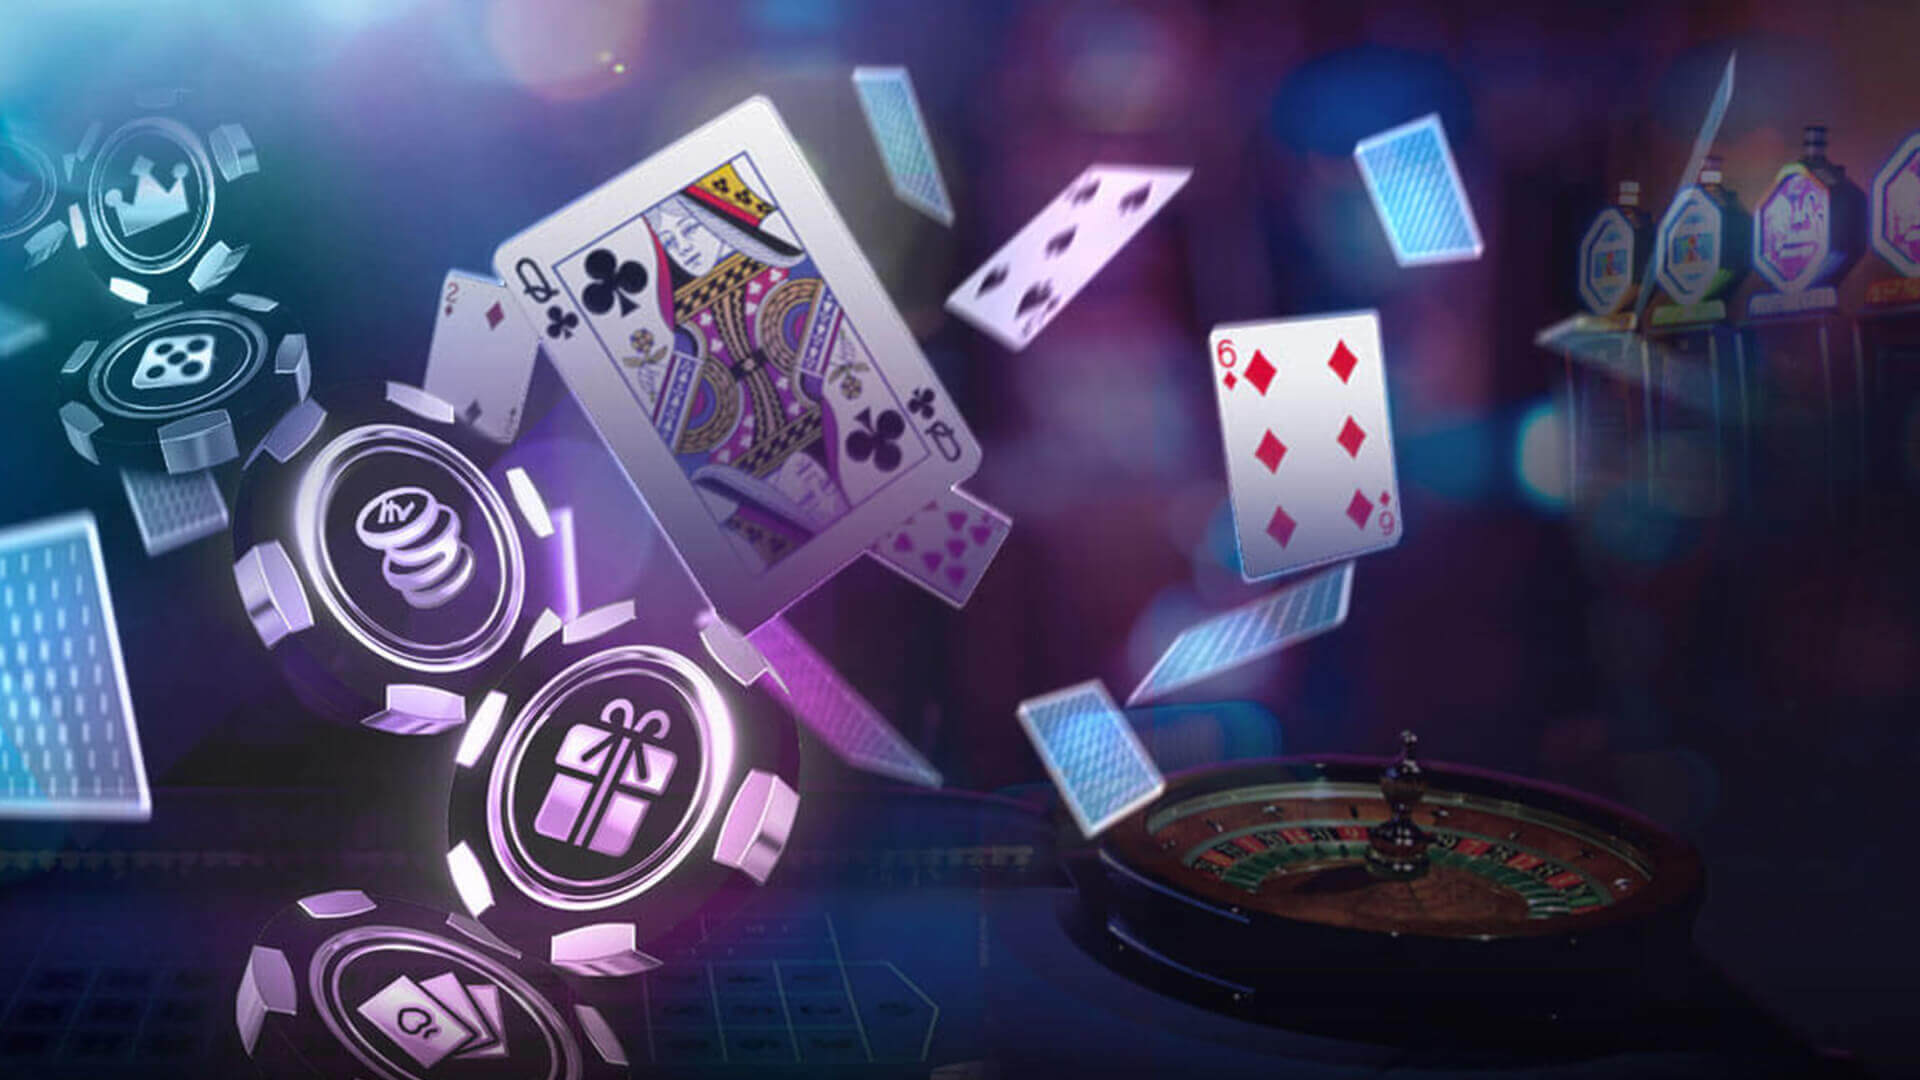 Poll: How A lot Do You Earn From Gambling?